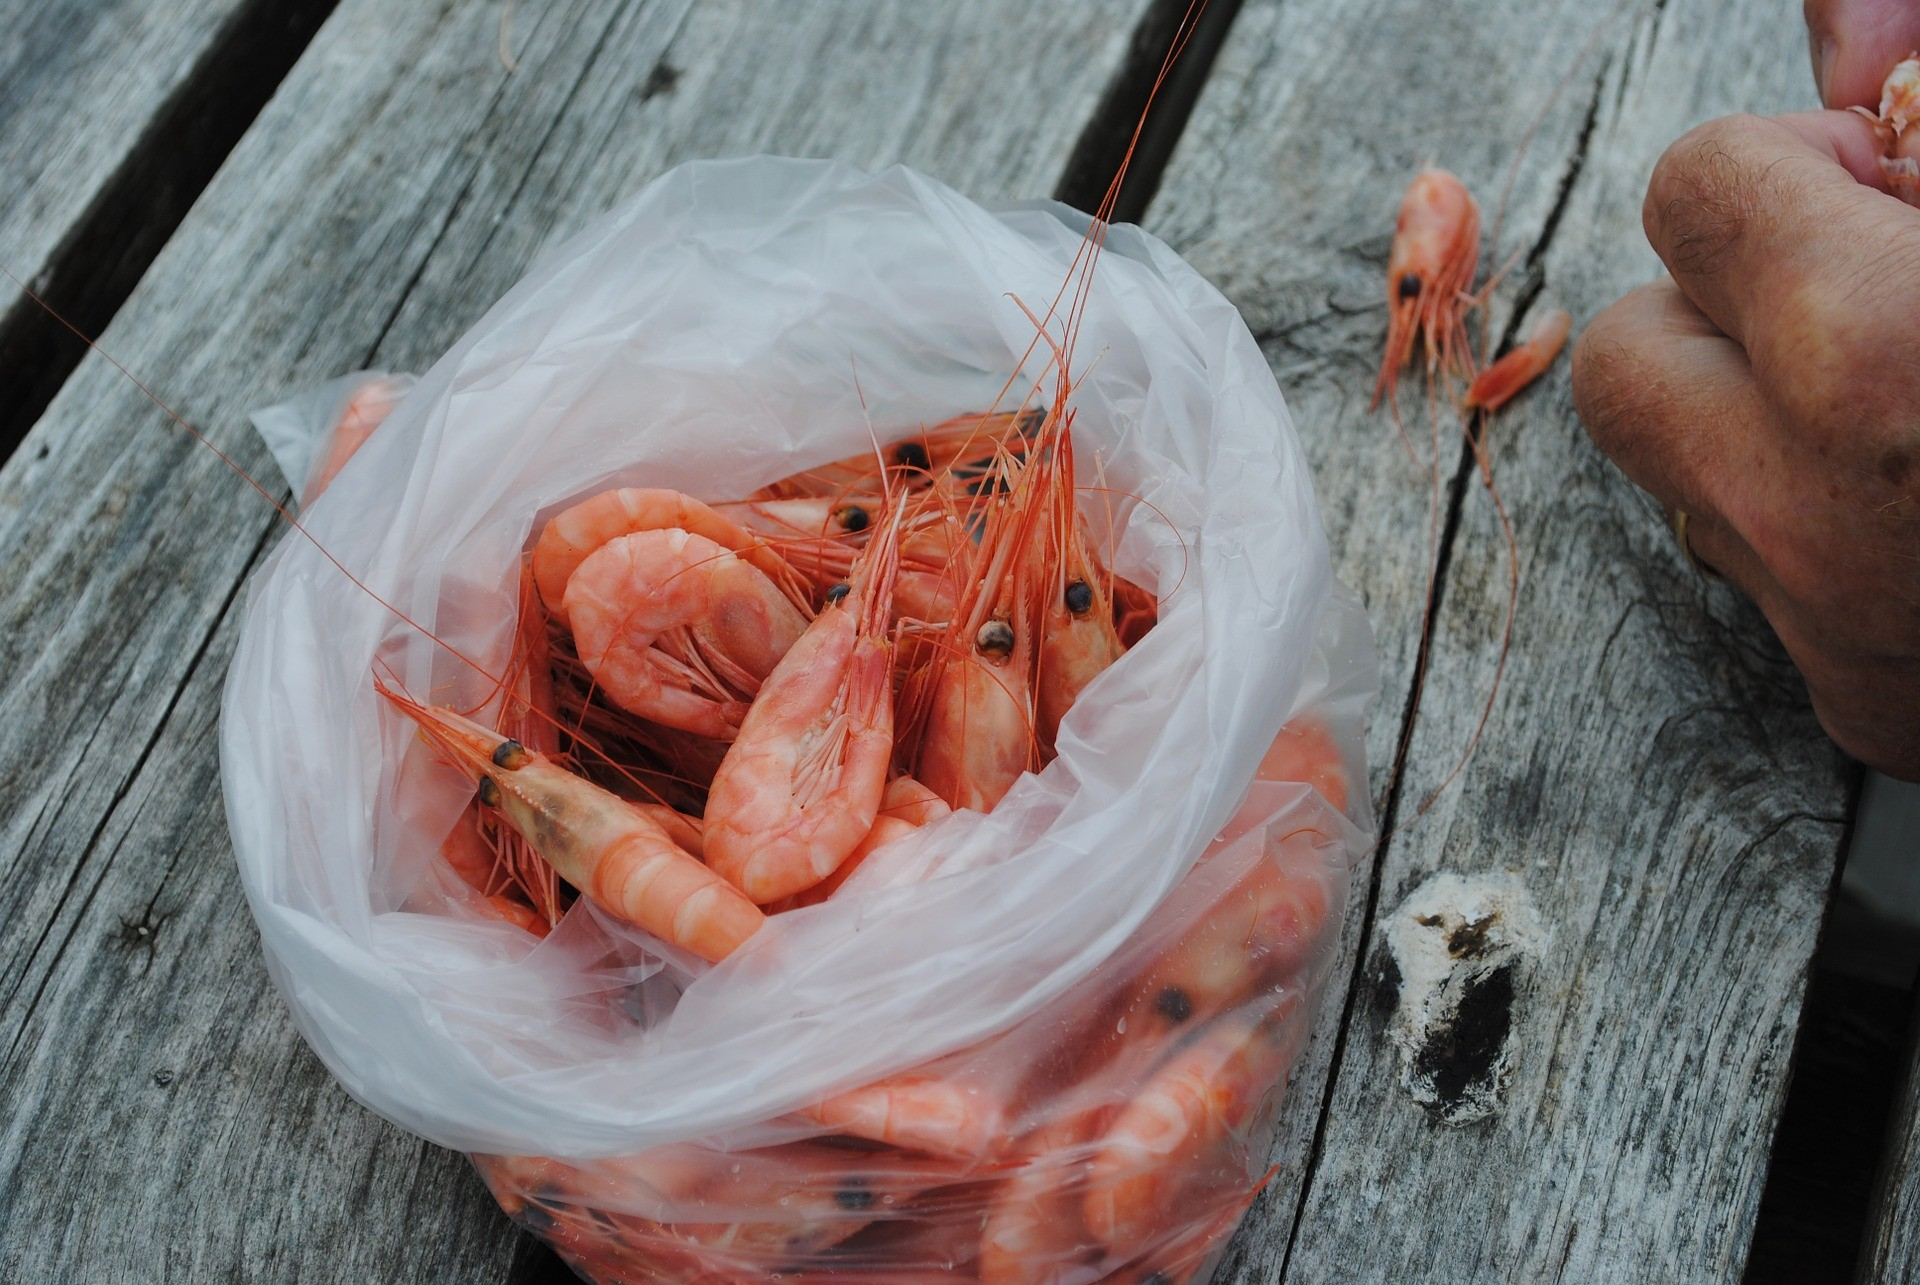 Northern shrimp: a Canadian delicacy